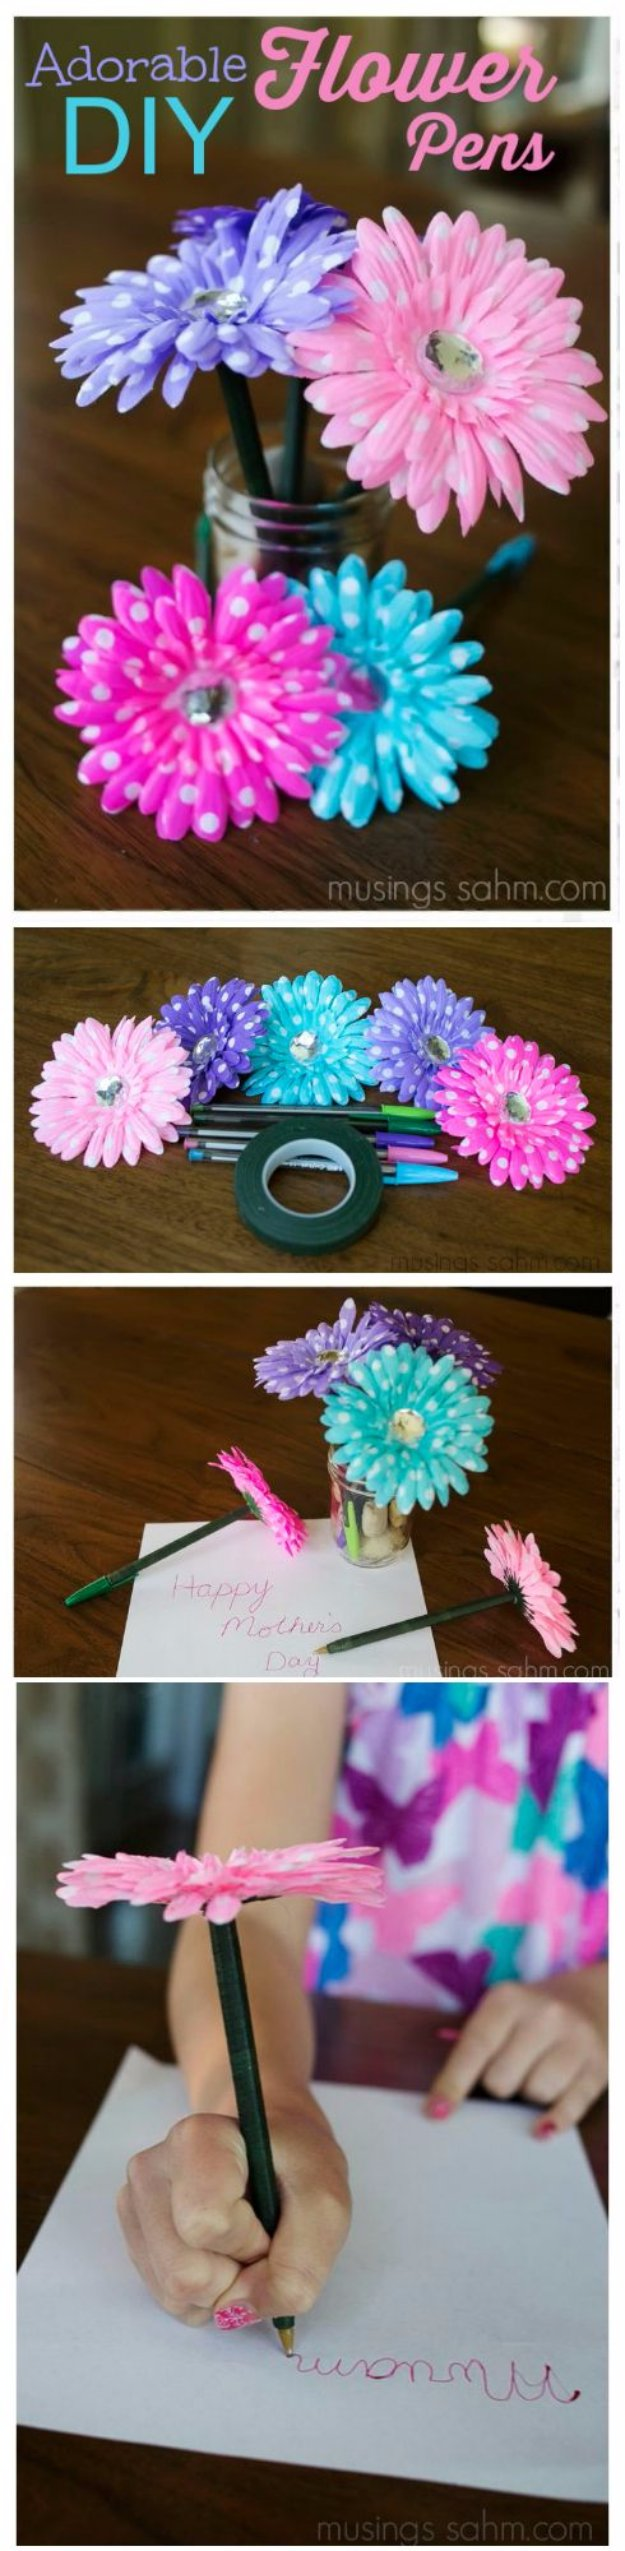 Easy Crafts To Sell - Adorable Flower Pens - Cool Homemade Craft Projects You Can Sell On Etsy, at Craft Fairs, Online and in Stores. Quick and Cheap DIY Ideas that Adults and Even Teens #craftstosell #diyideas #crafts